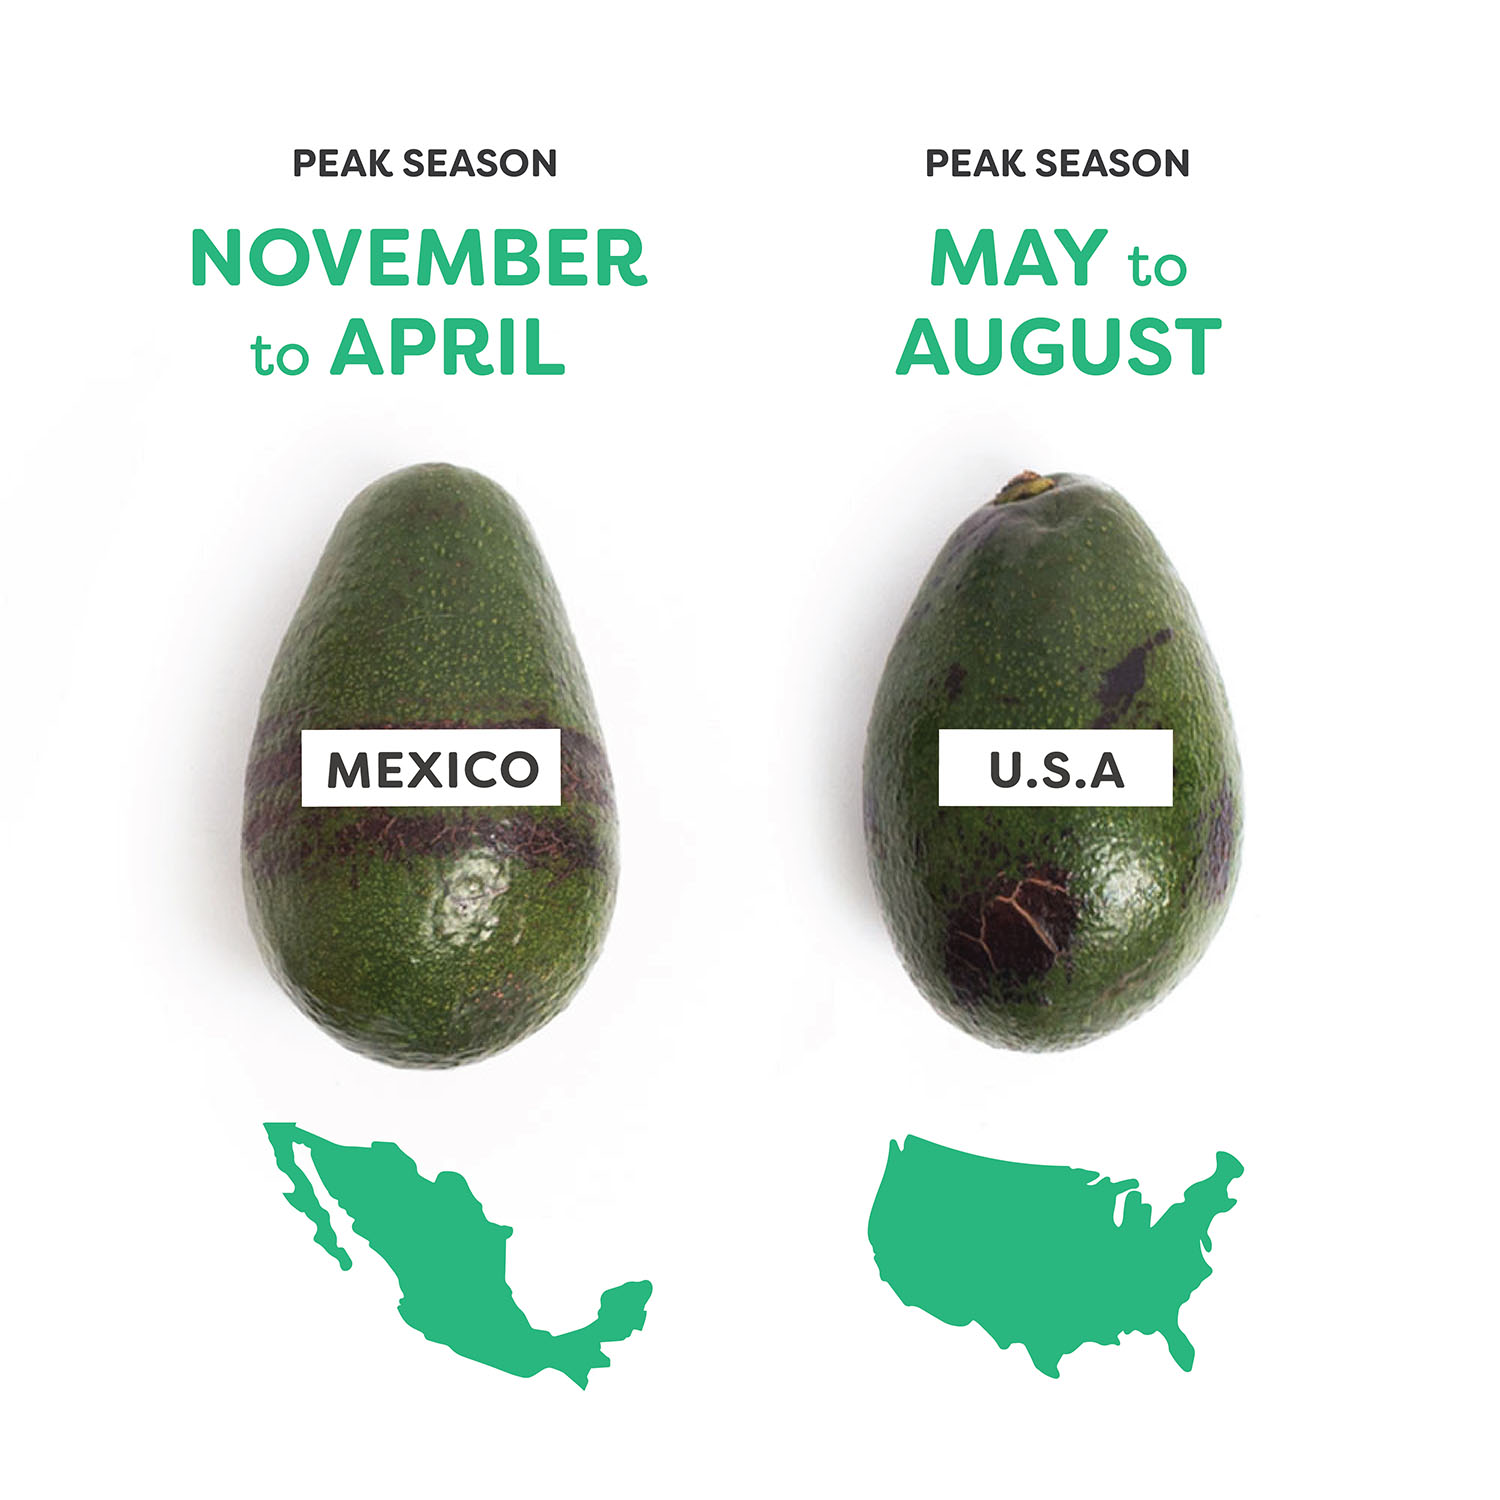 When Are Avocados in Season? — THE IMPERFECT DIGEST